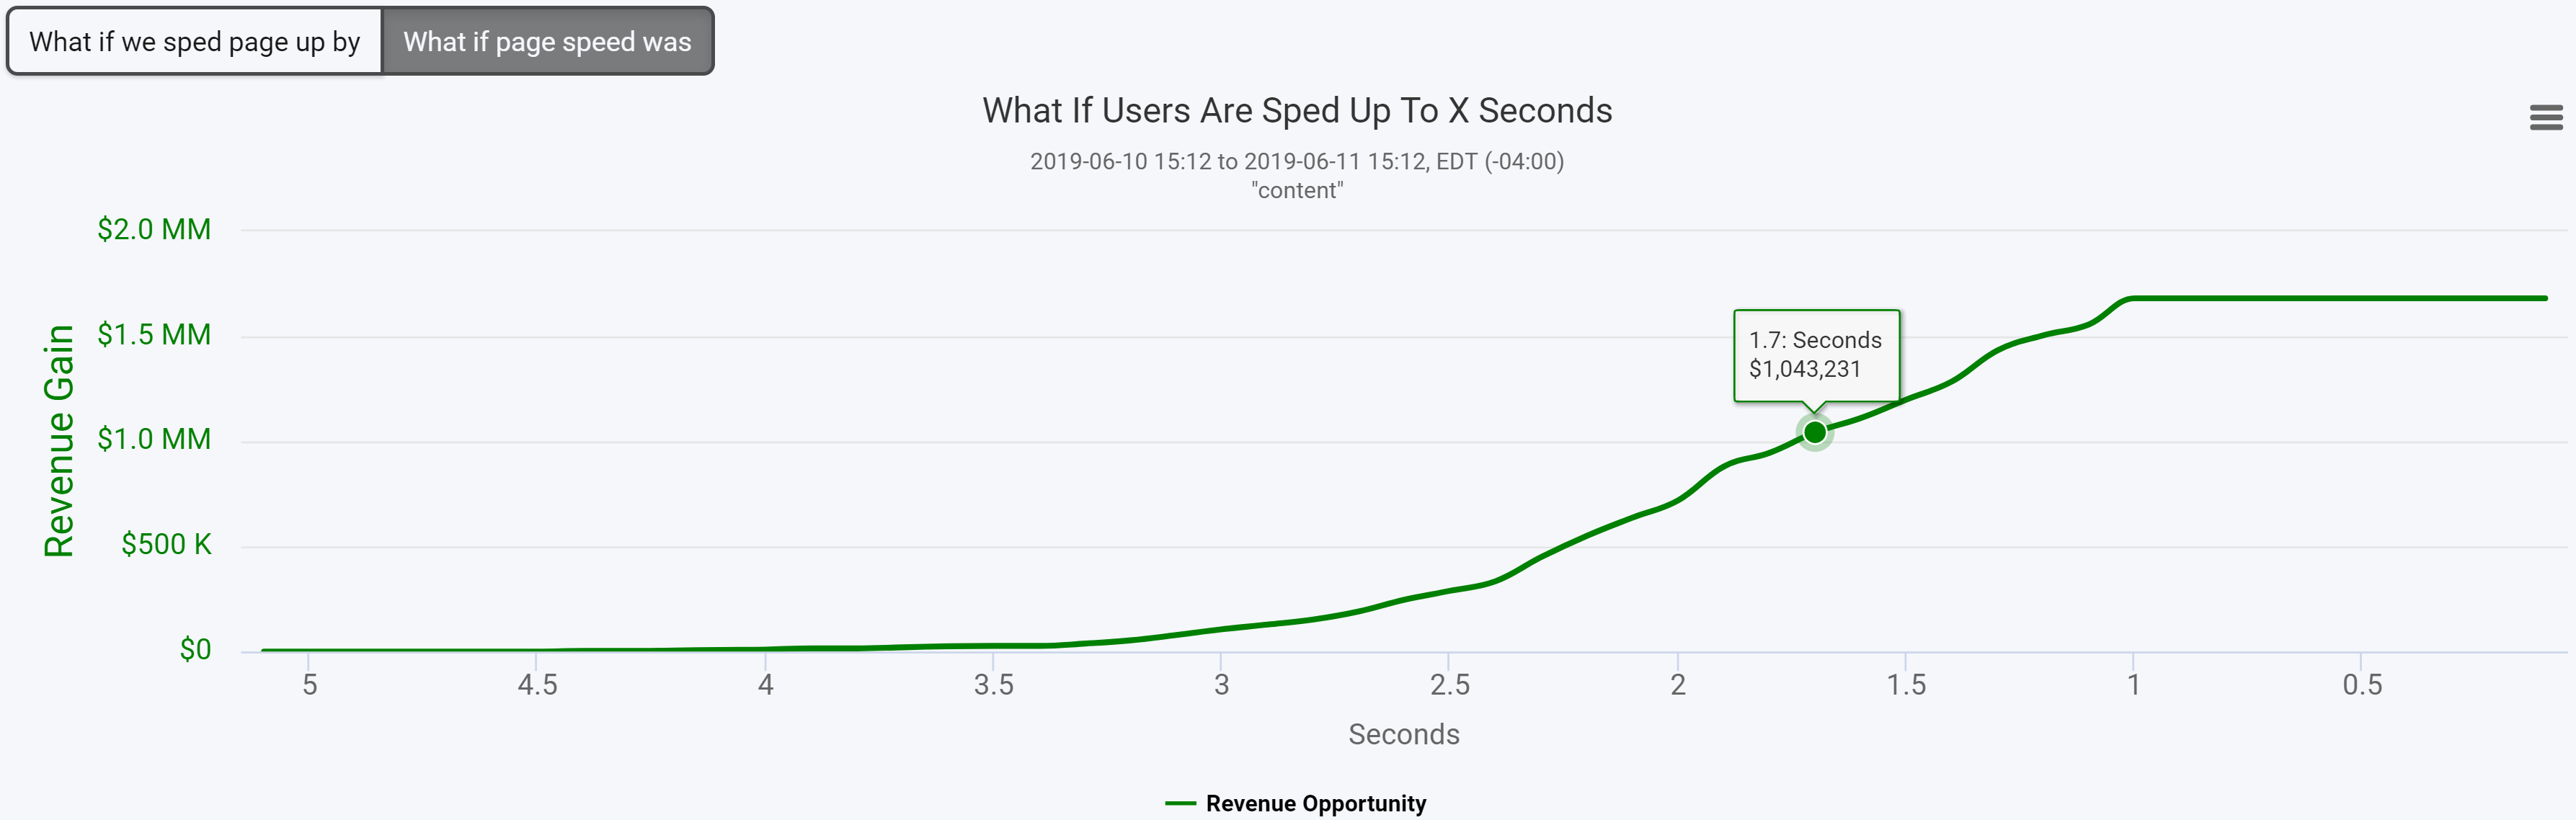 8_What_is_Users_are_Sped_Up_TO_X_Seconds.png